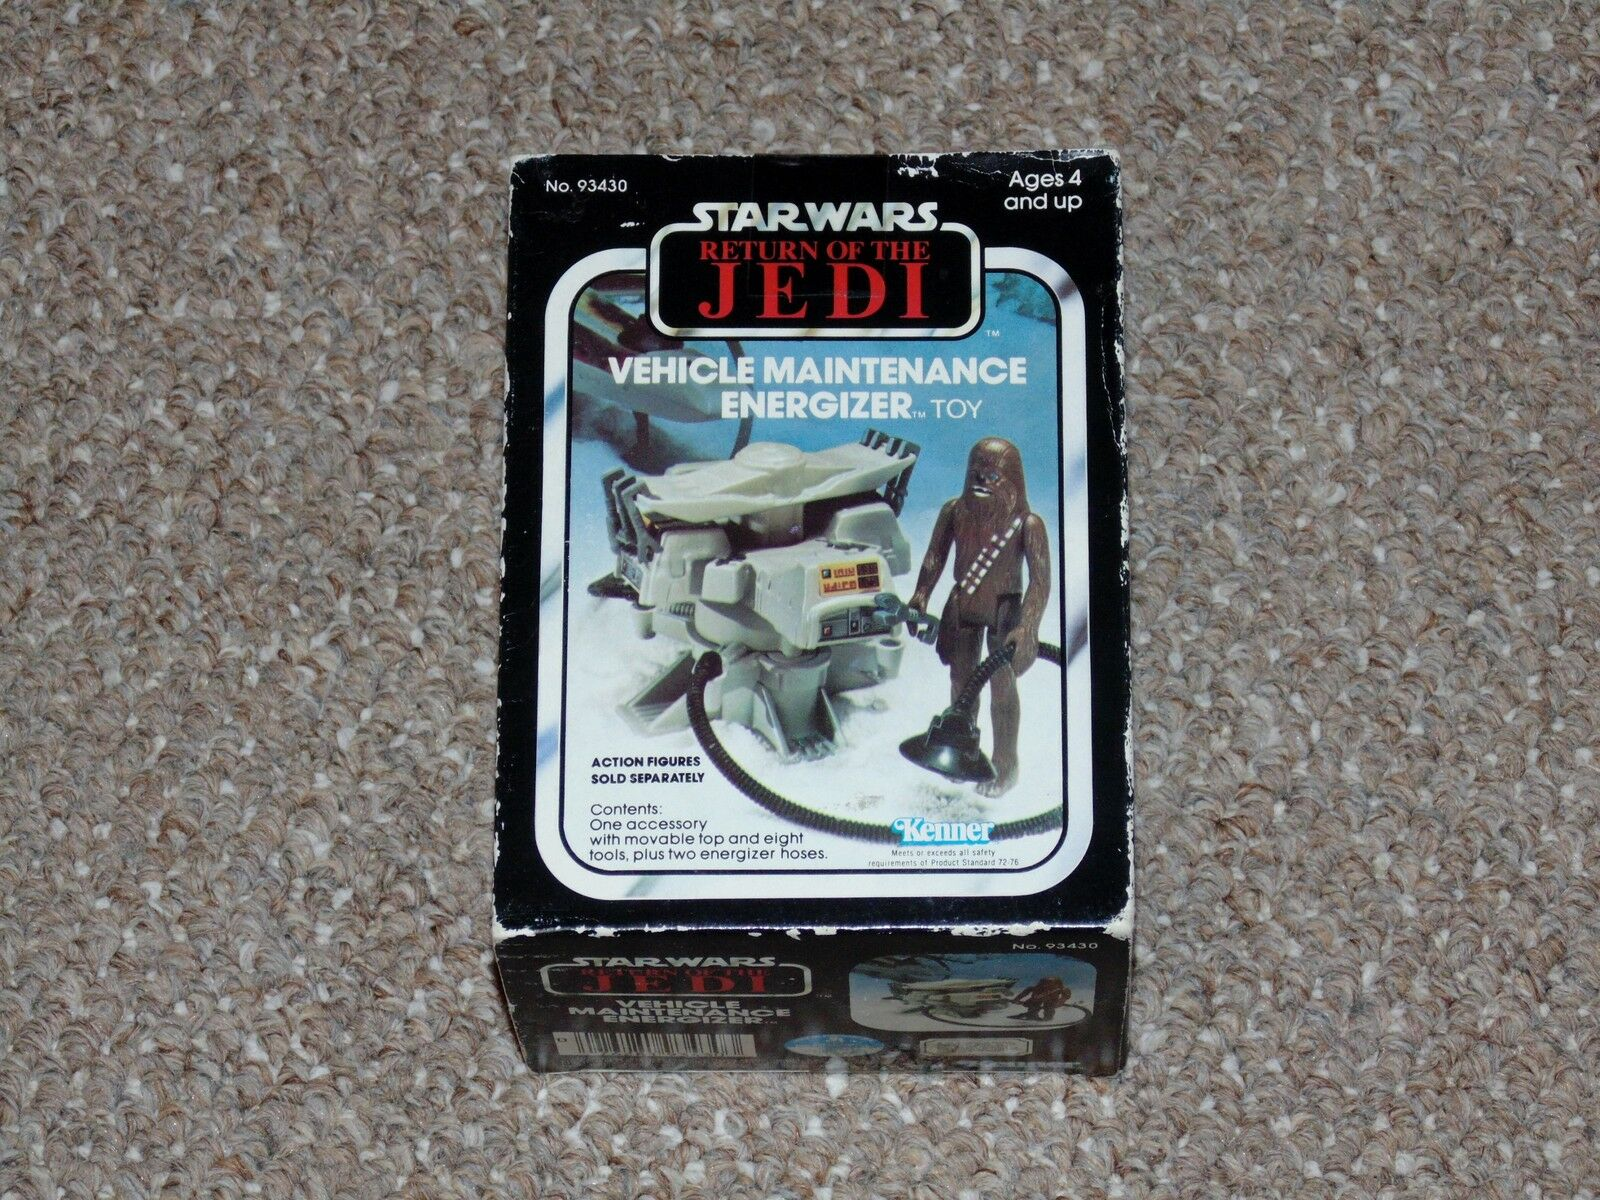 1983 Star Wars redJ Vehicle Maintenance Energizer Brand New MIB